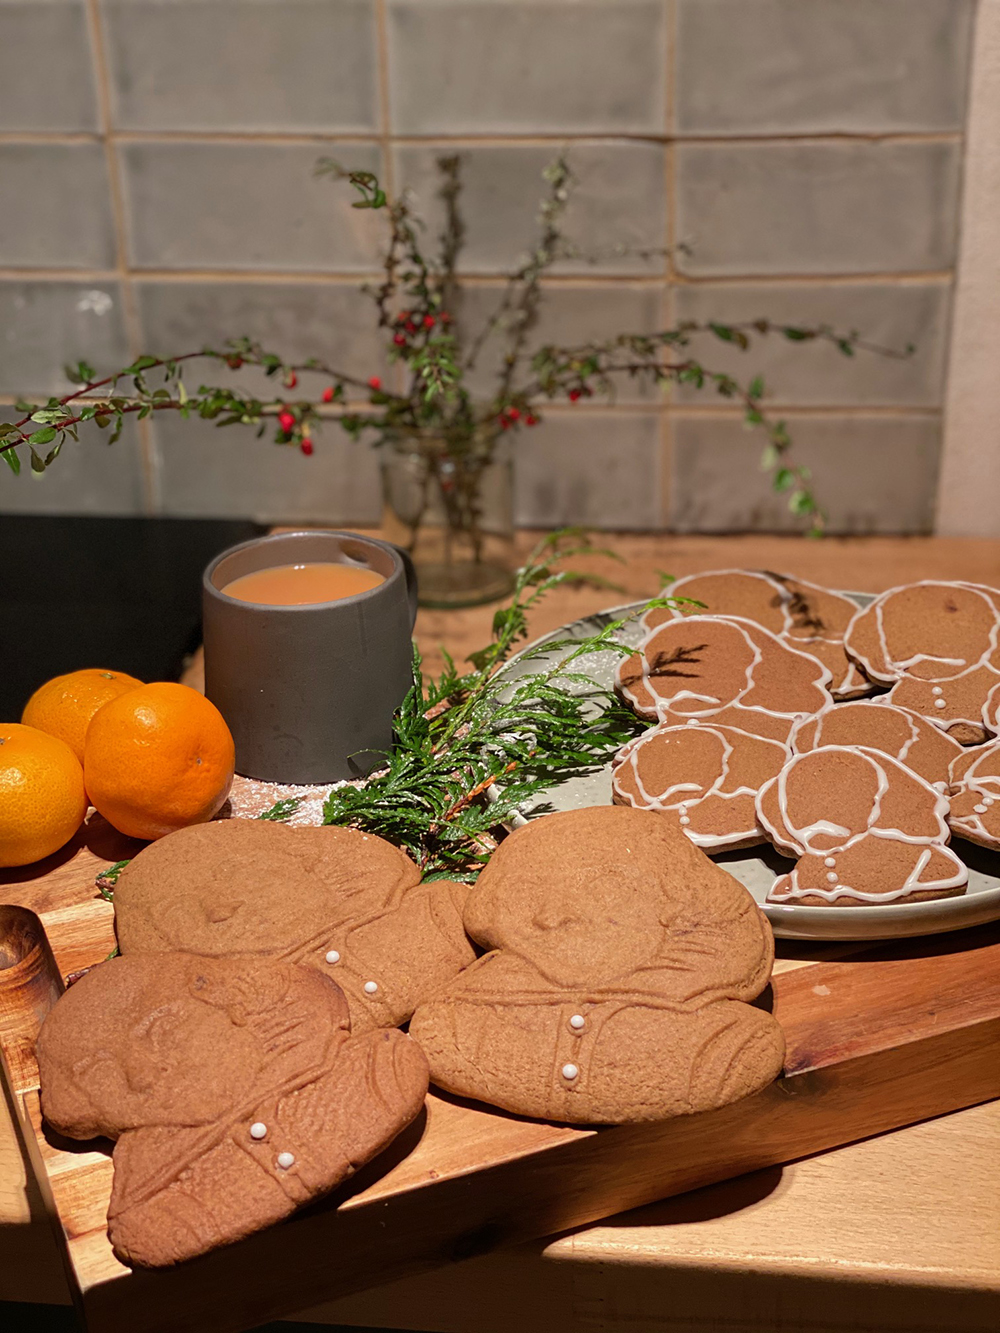 Gingerbread biscuits in the shape of Shakespeare's face rest on a plate with a mug of tea.